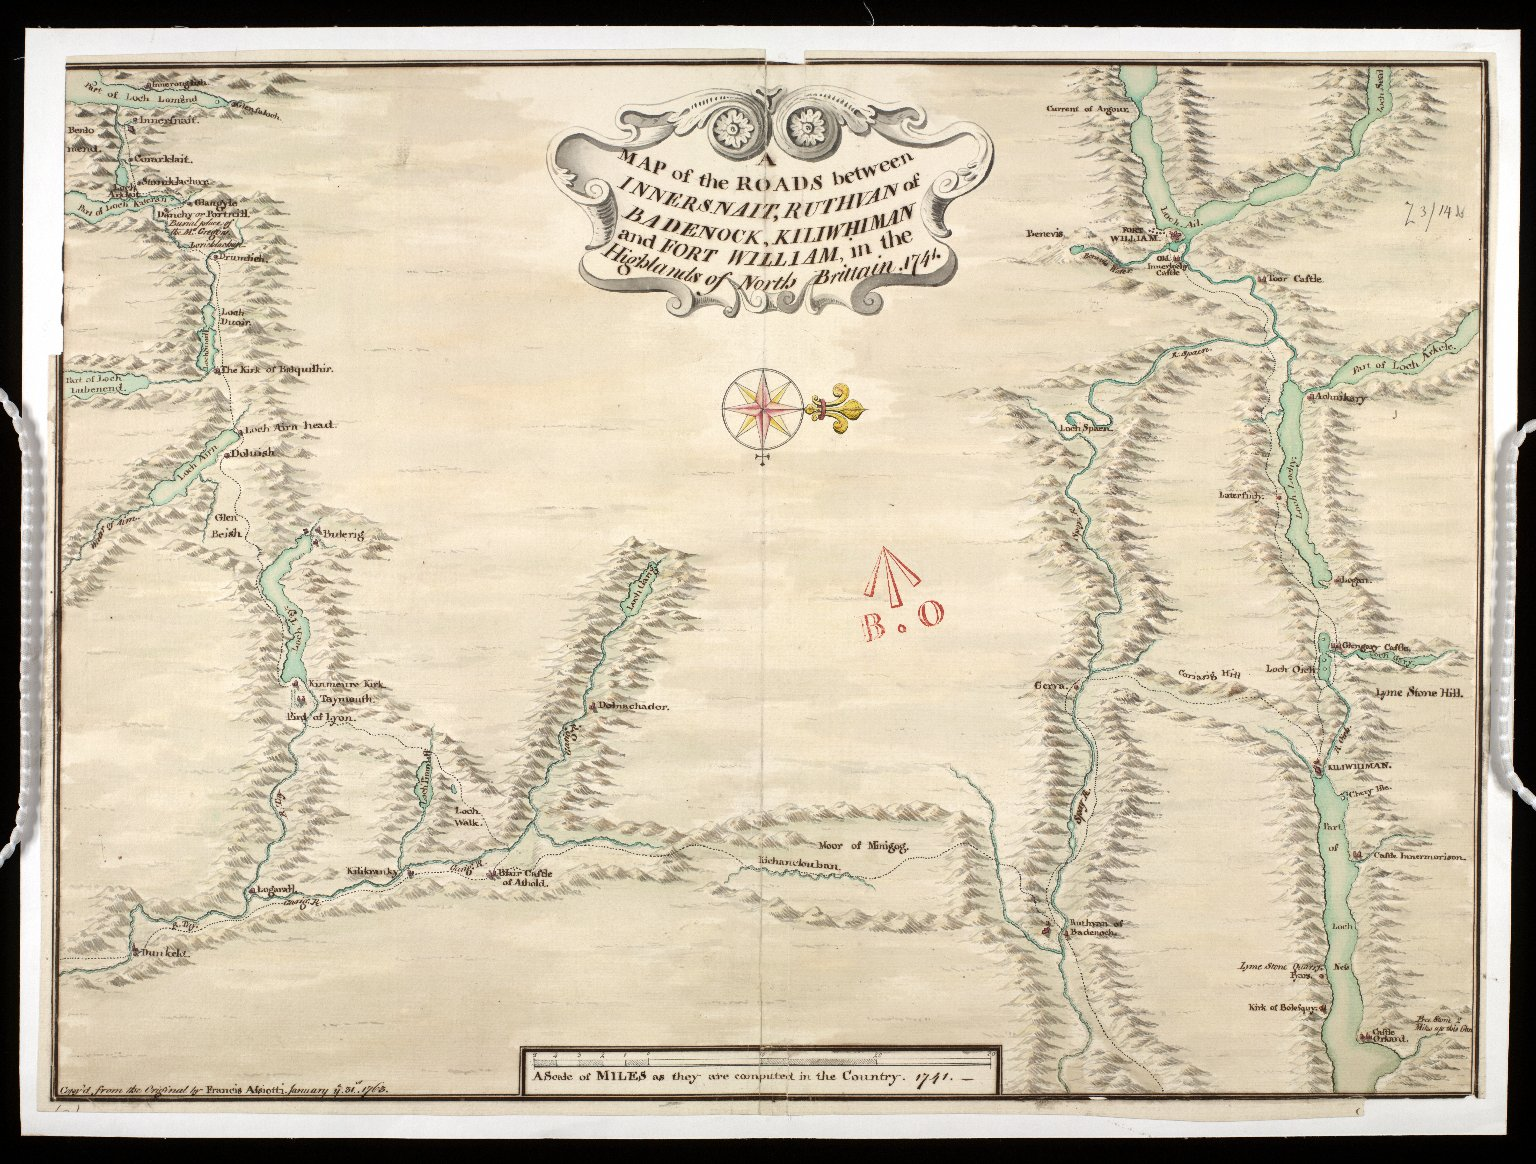 A Map of the Roads between Innersnait, Ruthvan of Badenock, Kiliwhiman and Fort William, in the Highlands of North Brittain [1718] 1741[copy] [1 of 1]